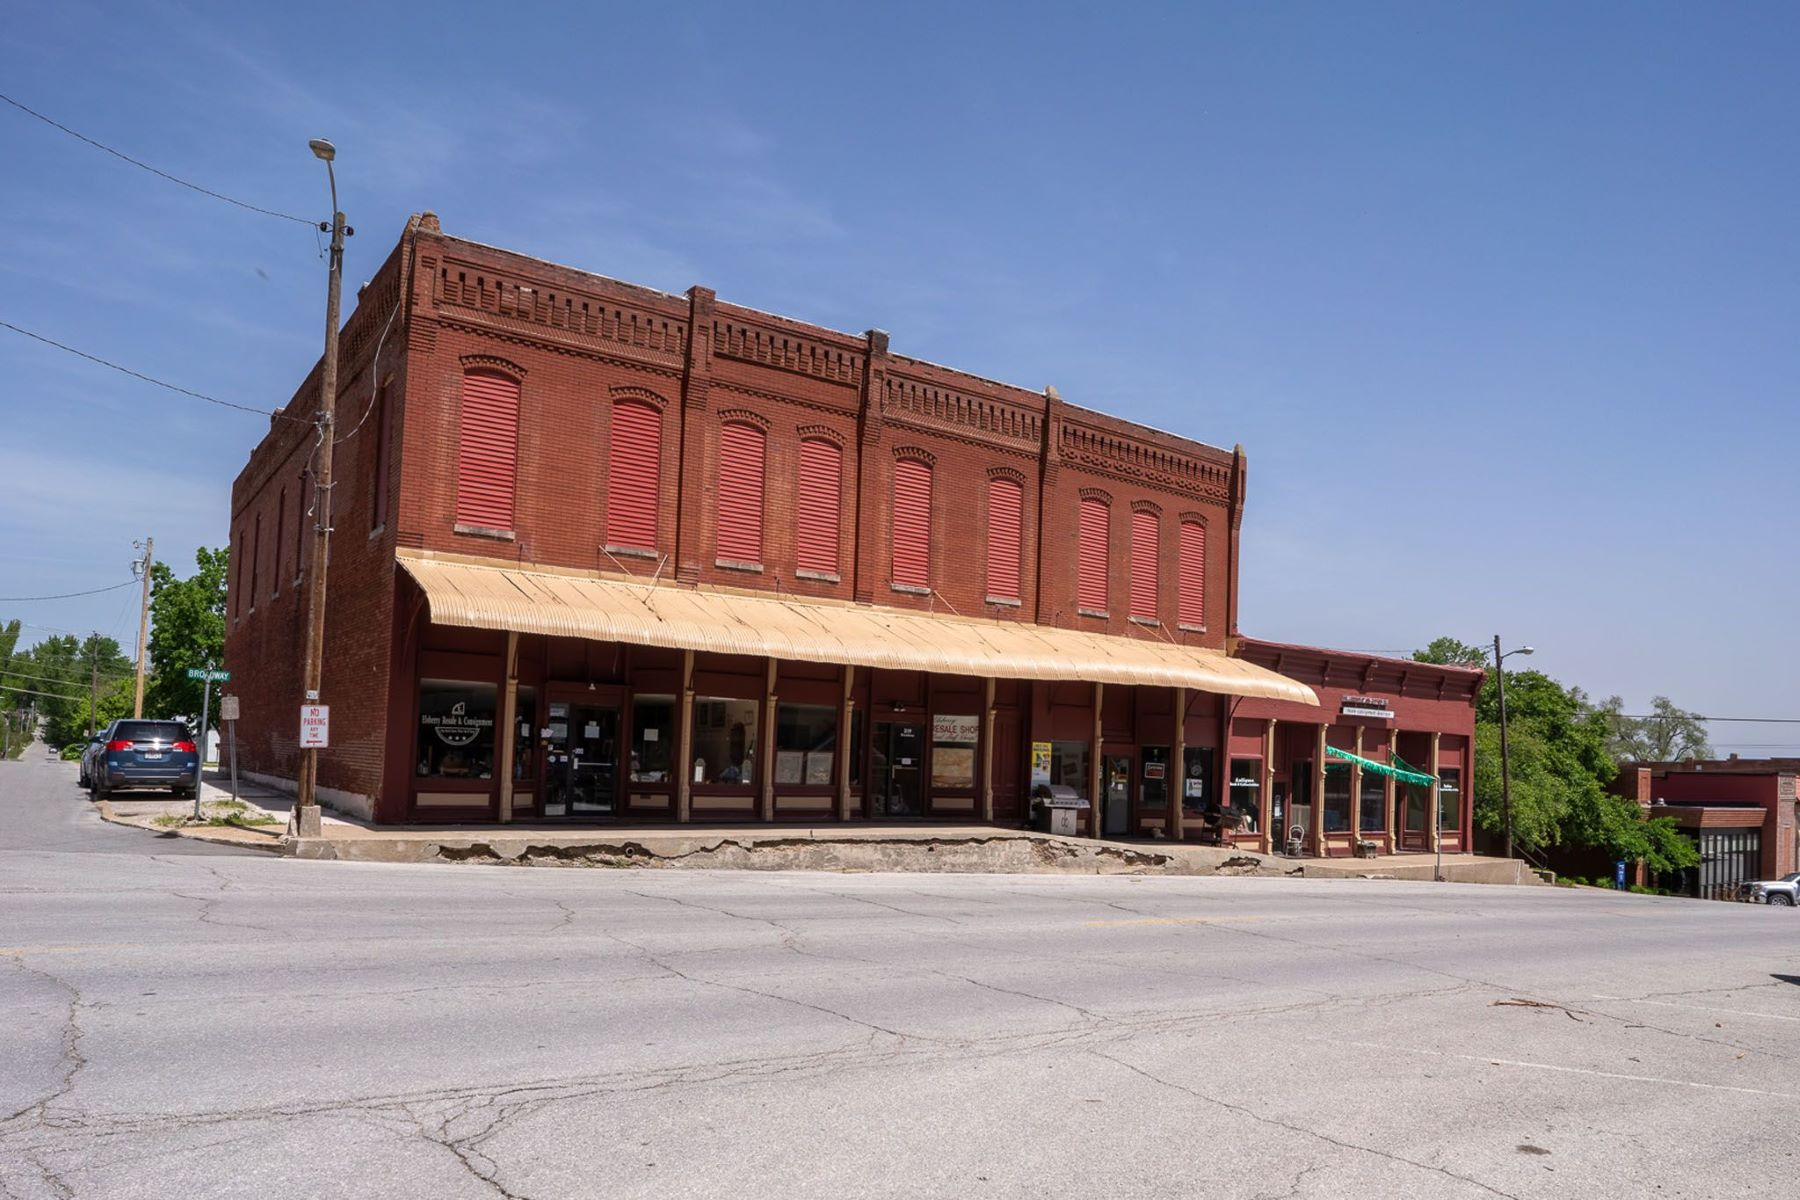 Additional photo for property listing at Commercial Retail Space for Sale 315 Broadway Street Unit 315, 317, 319 and 321 Elsberry, Missouri 63343 United States